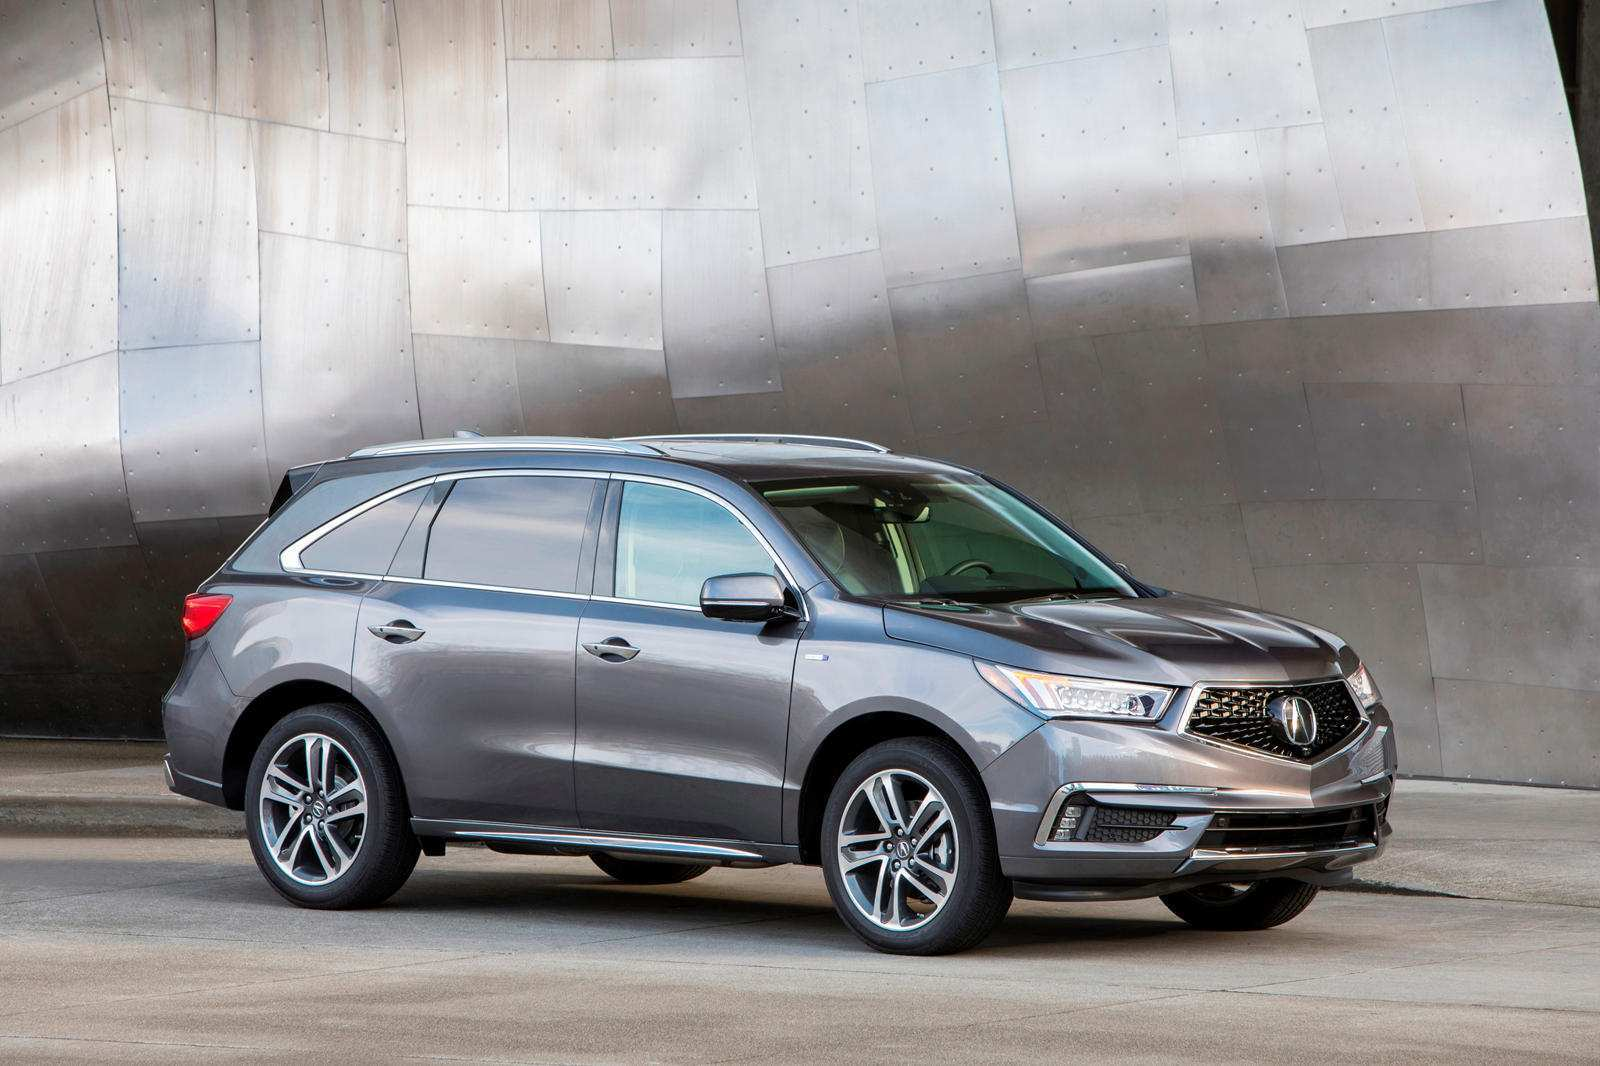 67 A Acura Mdx Changes For 2020 Wallpaper